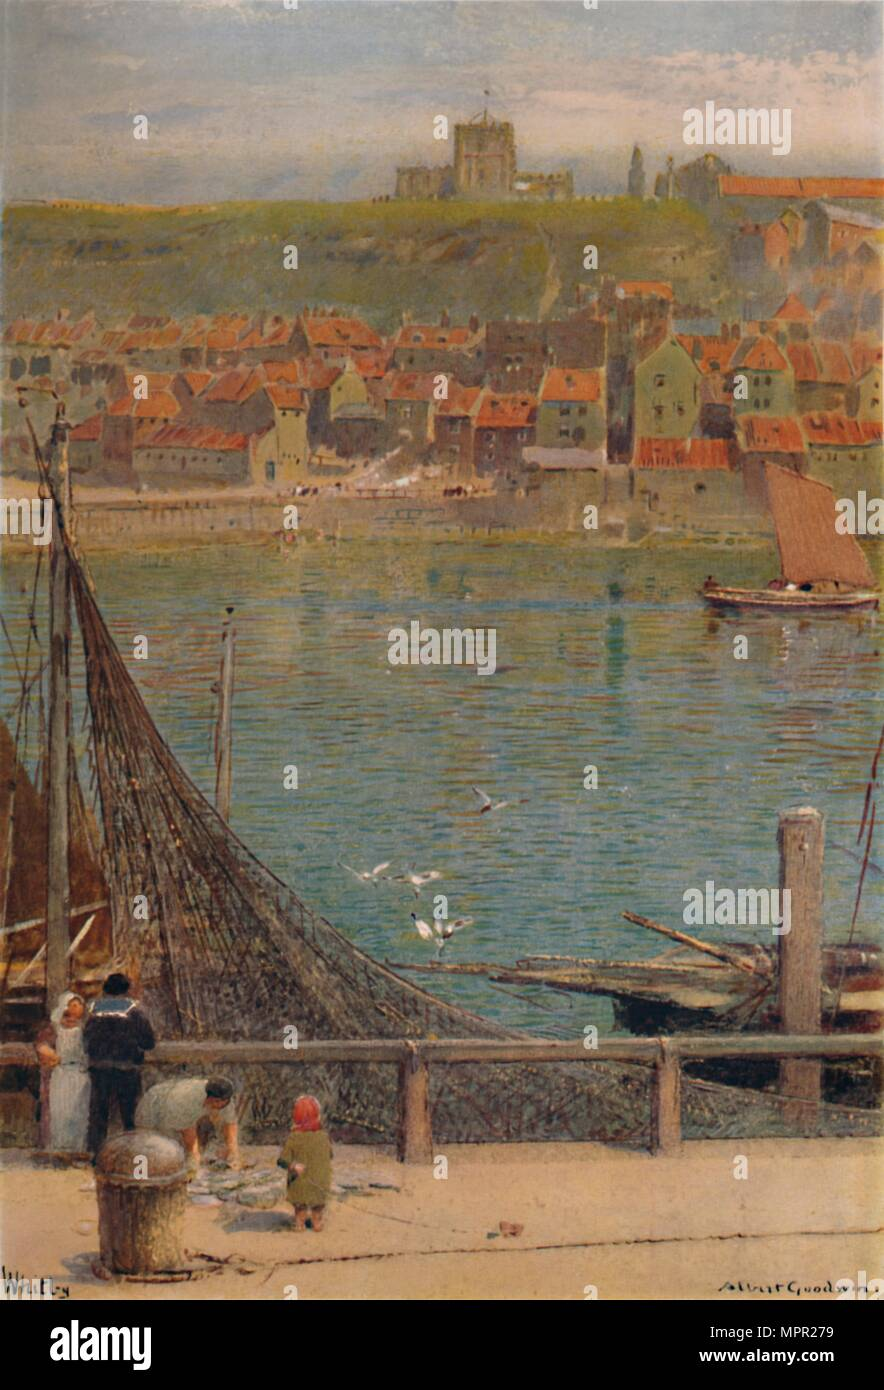 'Whitby', 19th-20th century, (1935). Artist: Albert Goodwin. - Stock Image